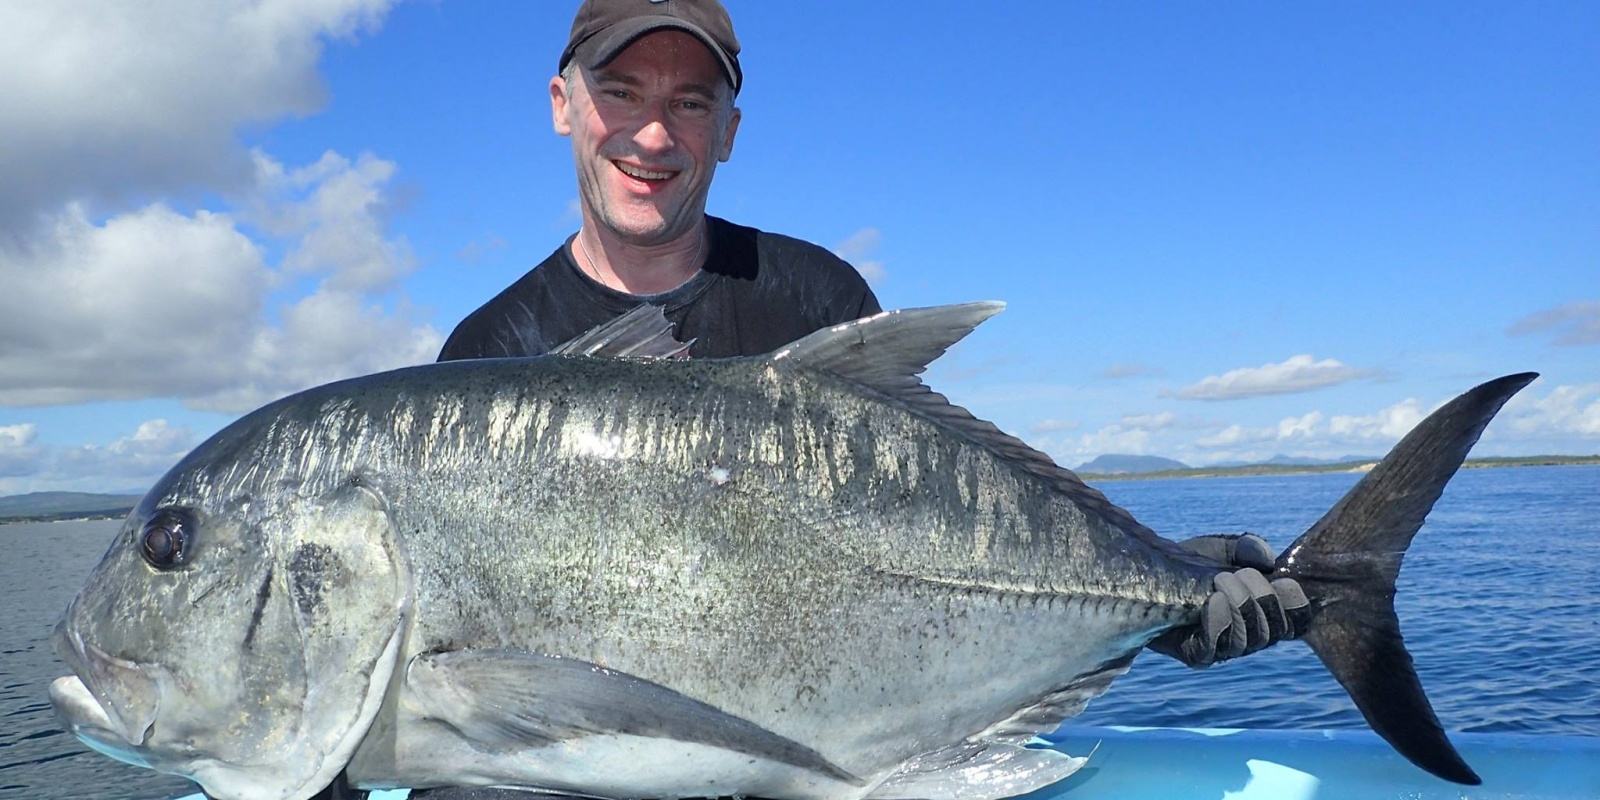 Belle prise avec Zenaq Expedition EP83-6 Trevally